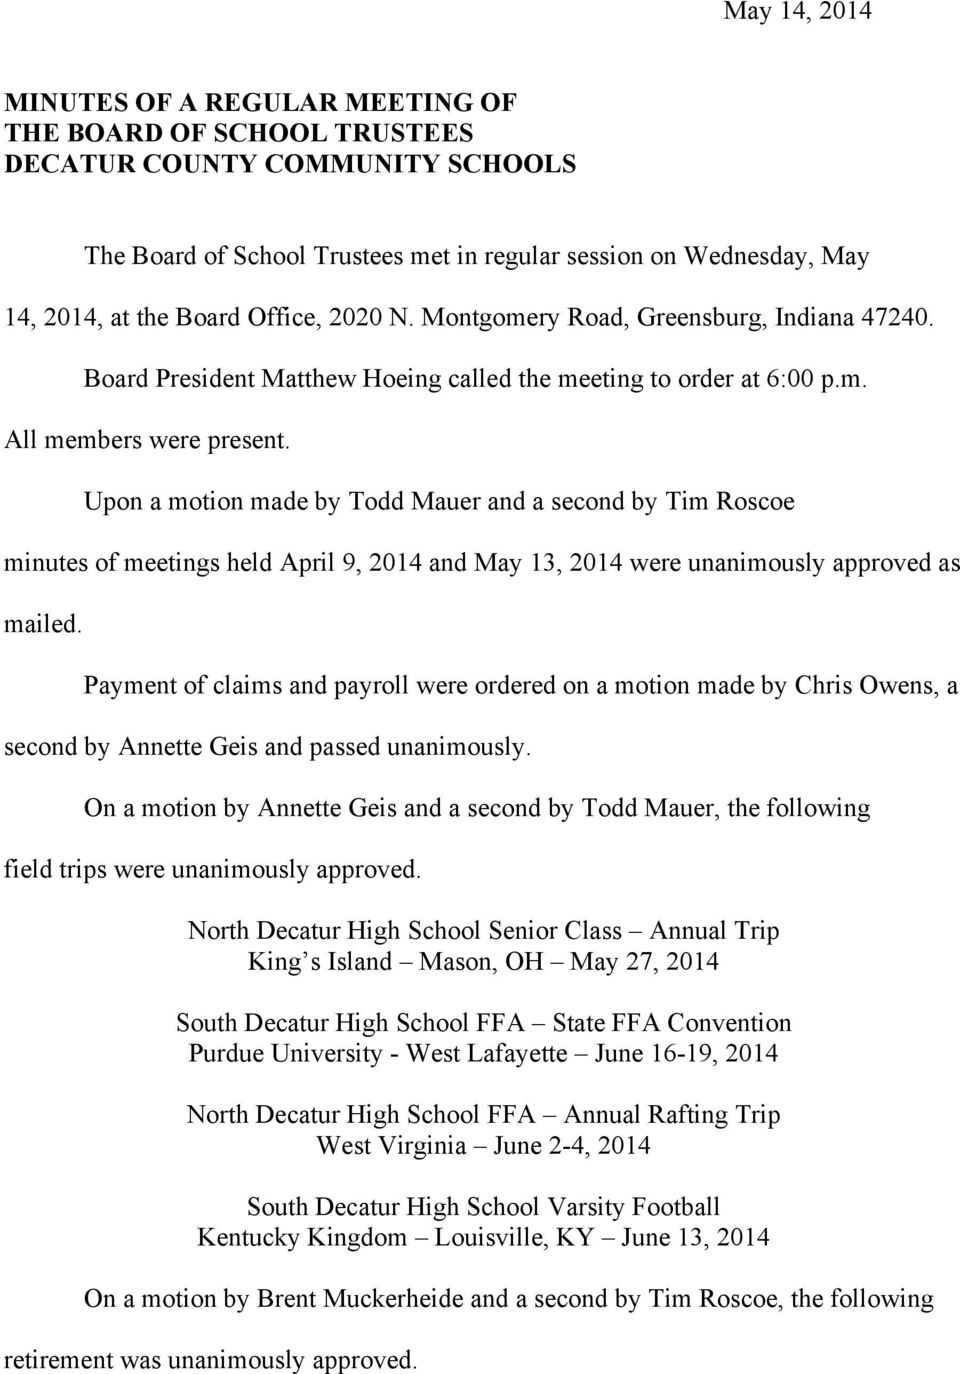 Upon a motion made by Todd Mauer and a second by Tim Roscoe minutes of meetings held April 9, 2014 and May 13, 2014 were unanimously approved as mailed.